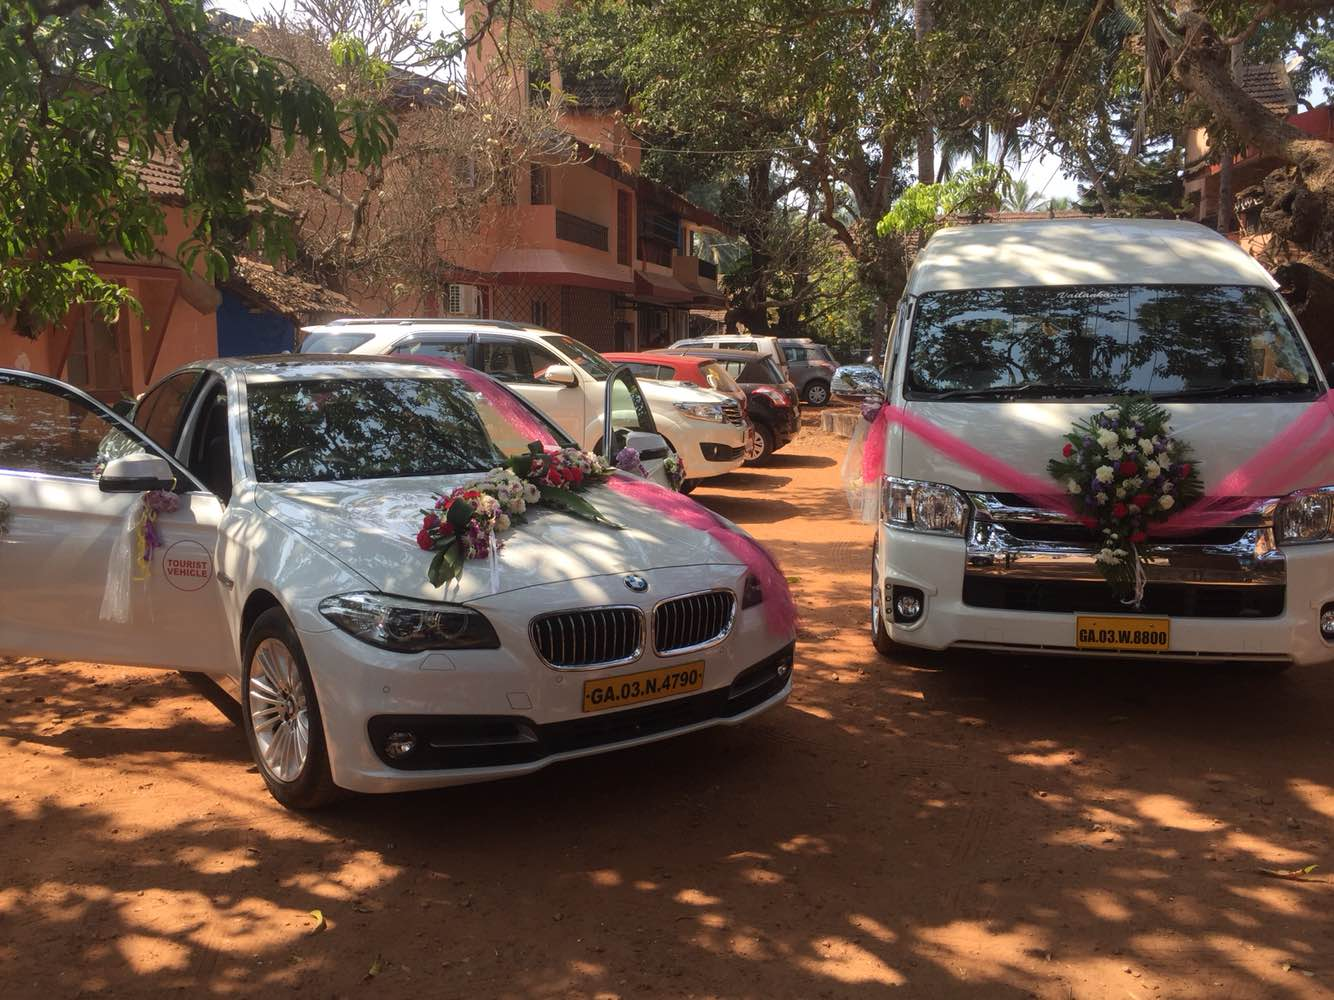 BMW and TOYOTA COMMUTER for rent in Goa Call @9822101598